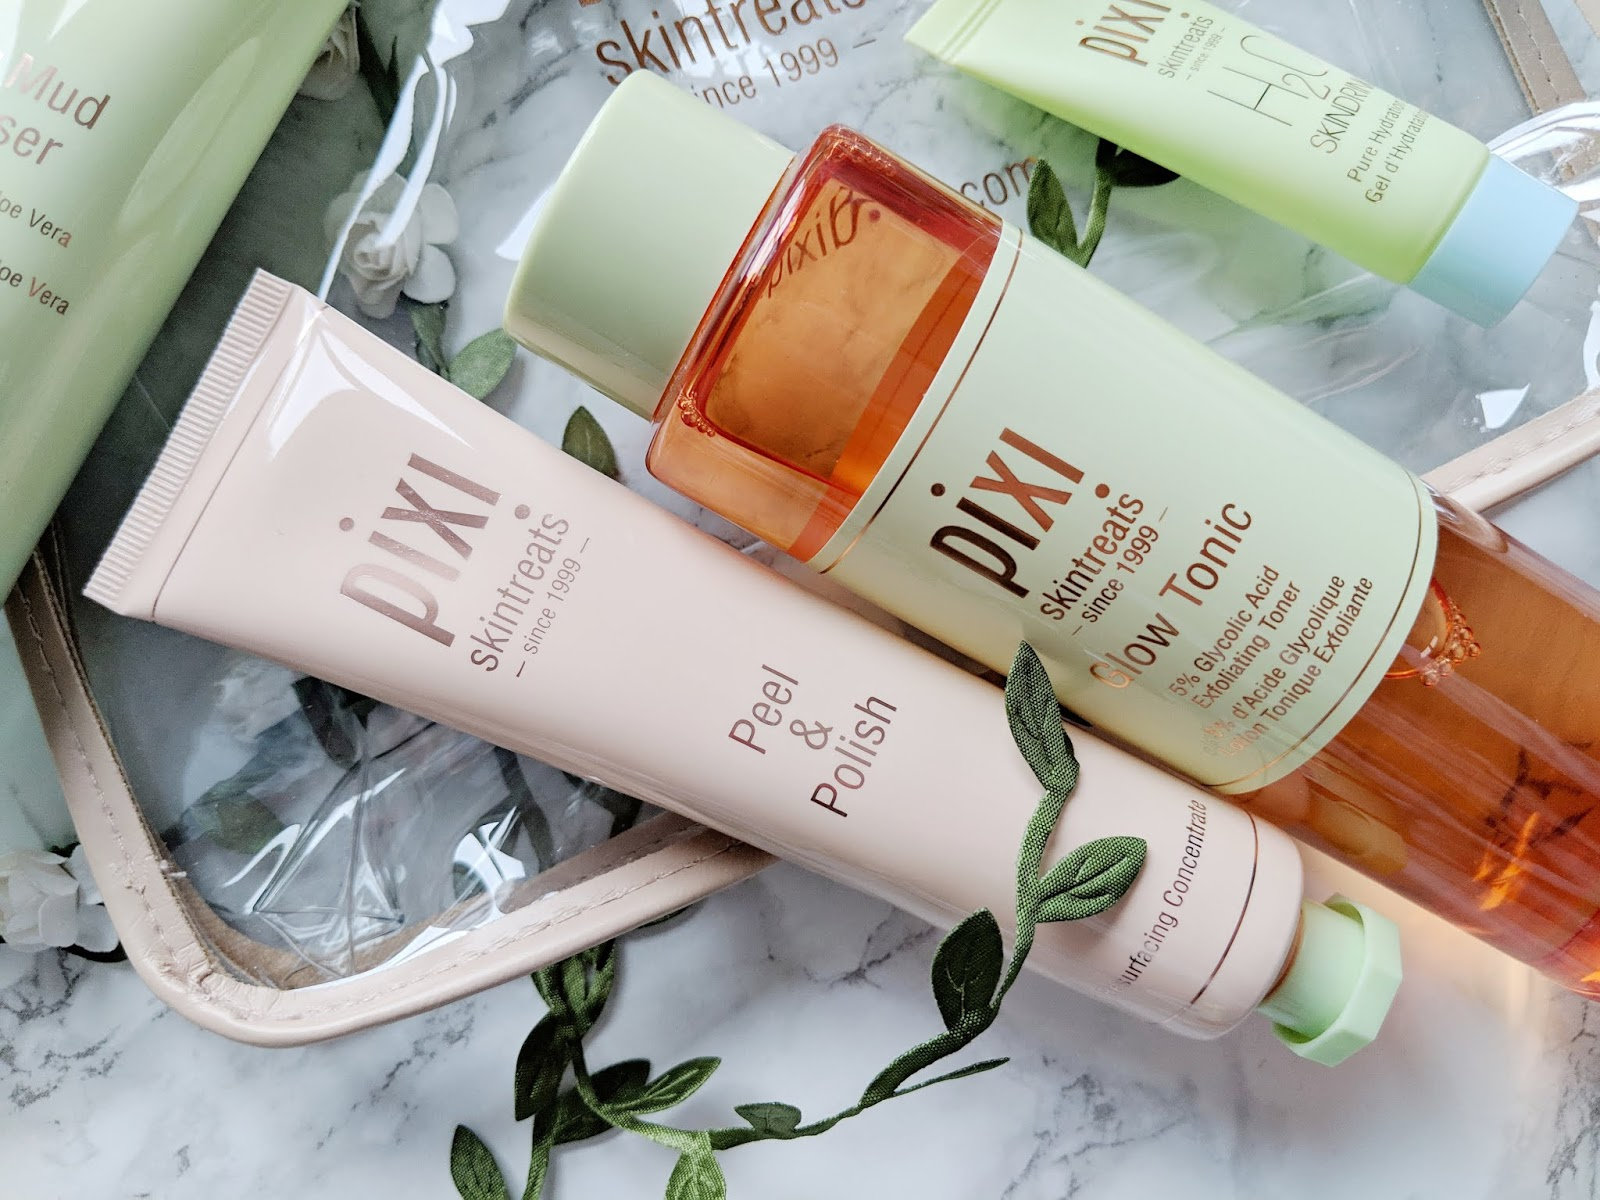 Pixi_Skintreats_Glow_Tonic_and_Peel_and_Polish